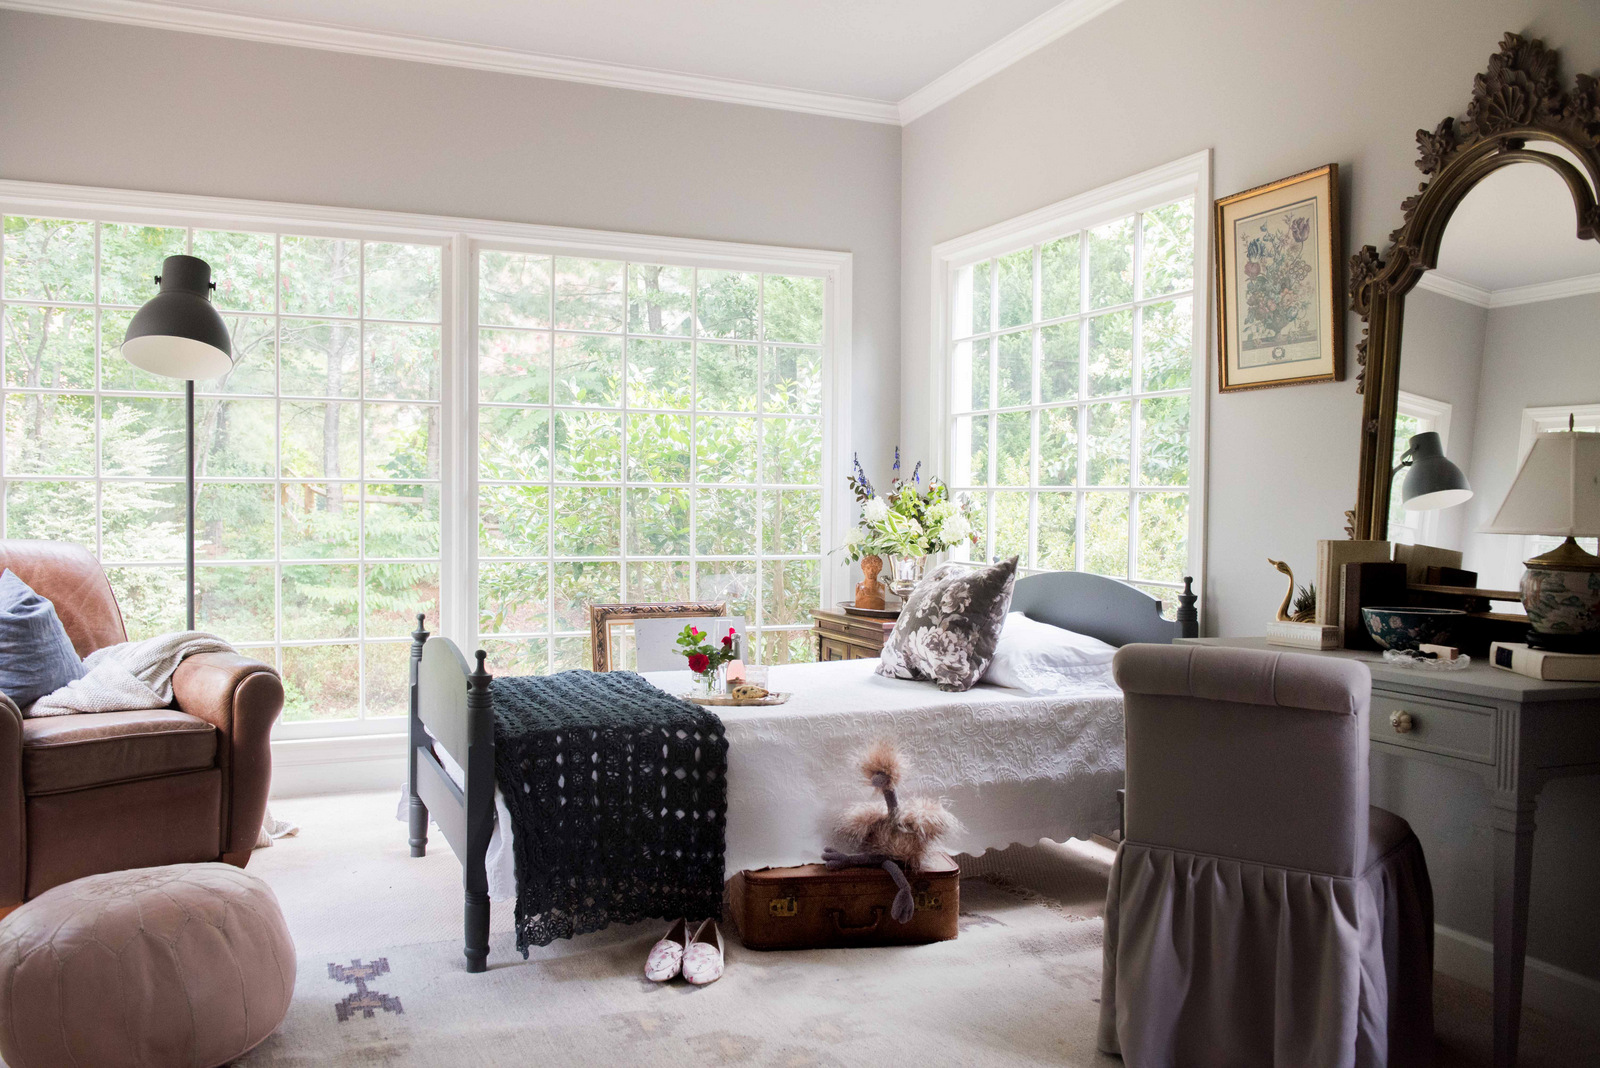 The Romantic Floral Guest Bedroom